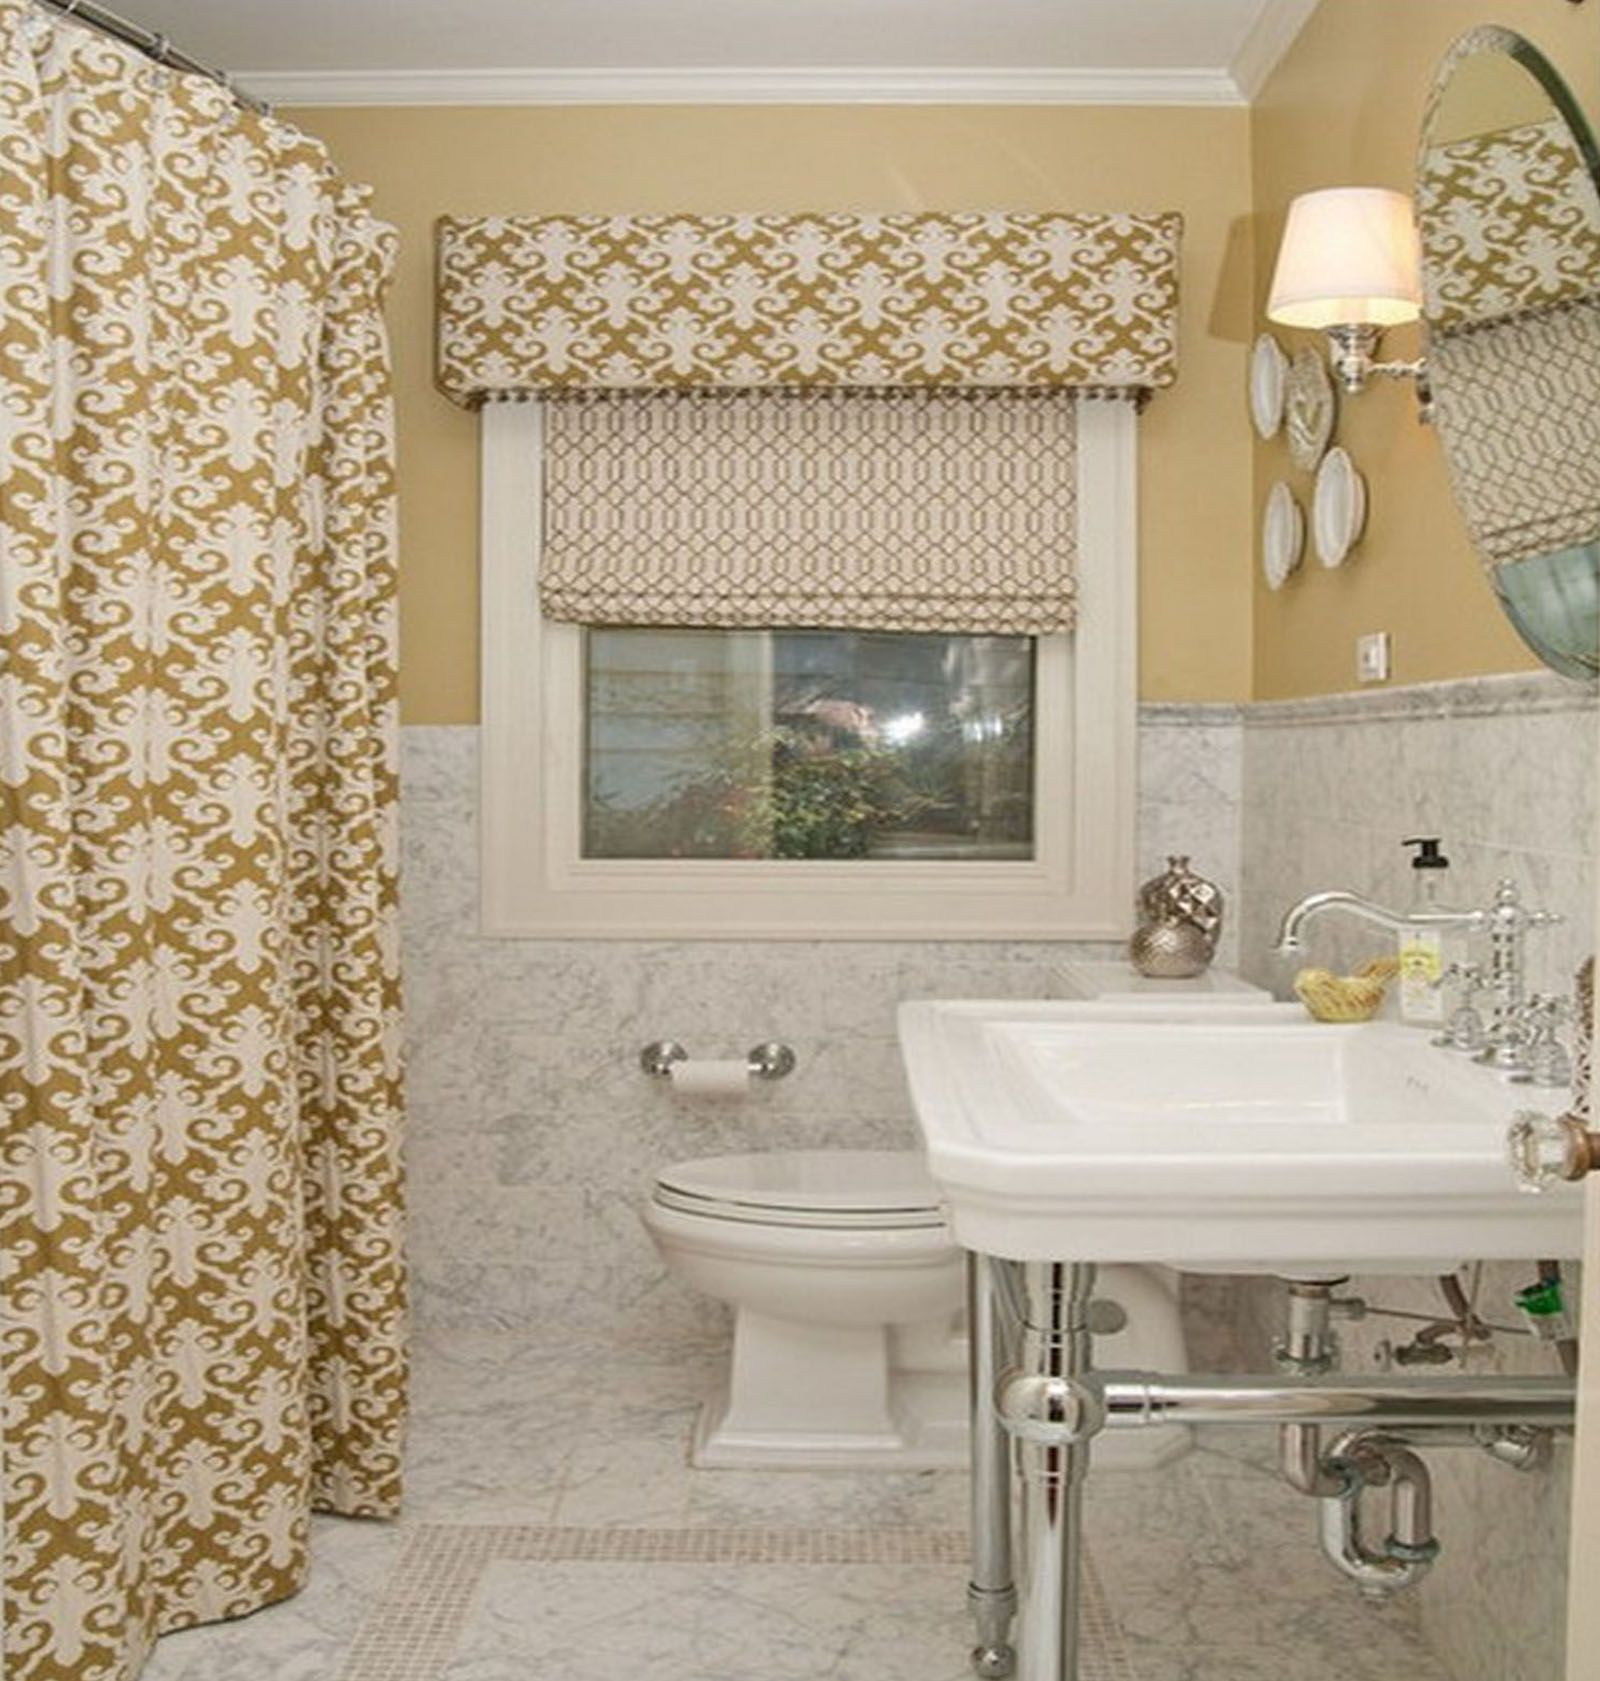 Small window decor  pin by leah selvidge on remodel  pinterest  small windows and window